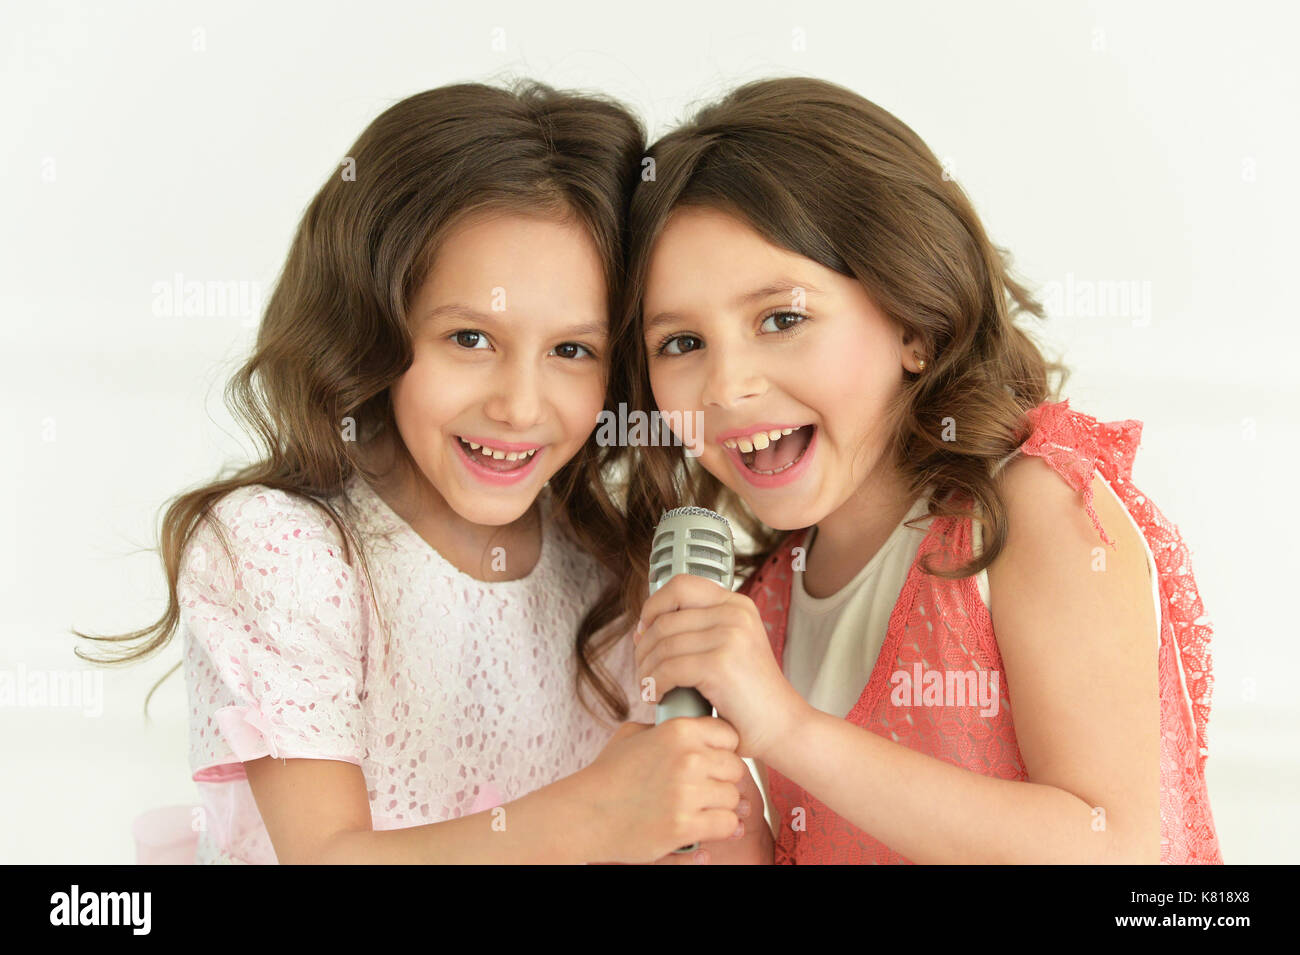 Girsl Stock Photos & Girsl Stock Images - Alamy